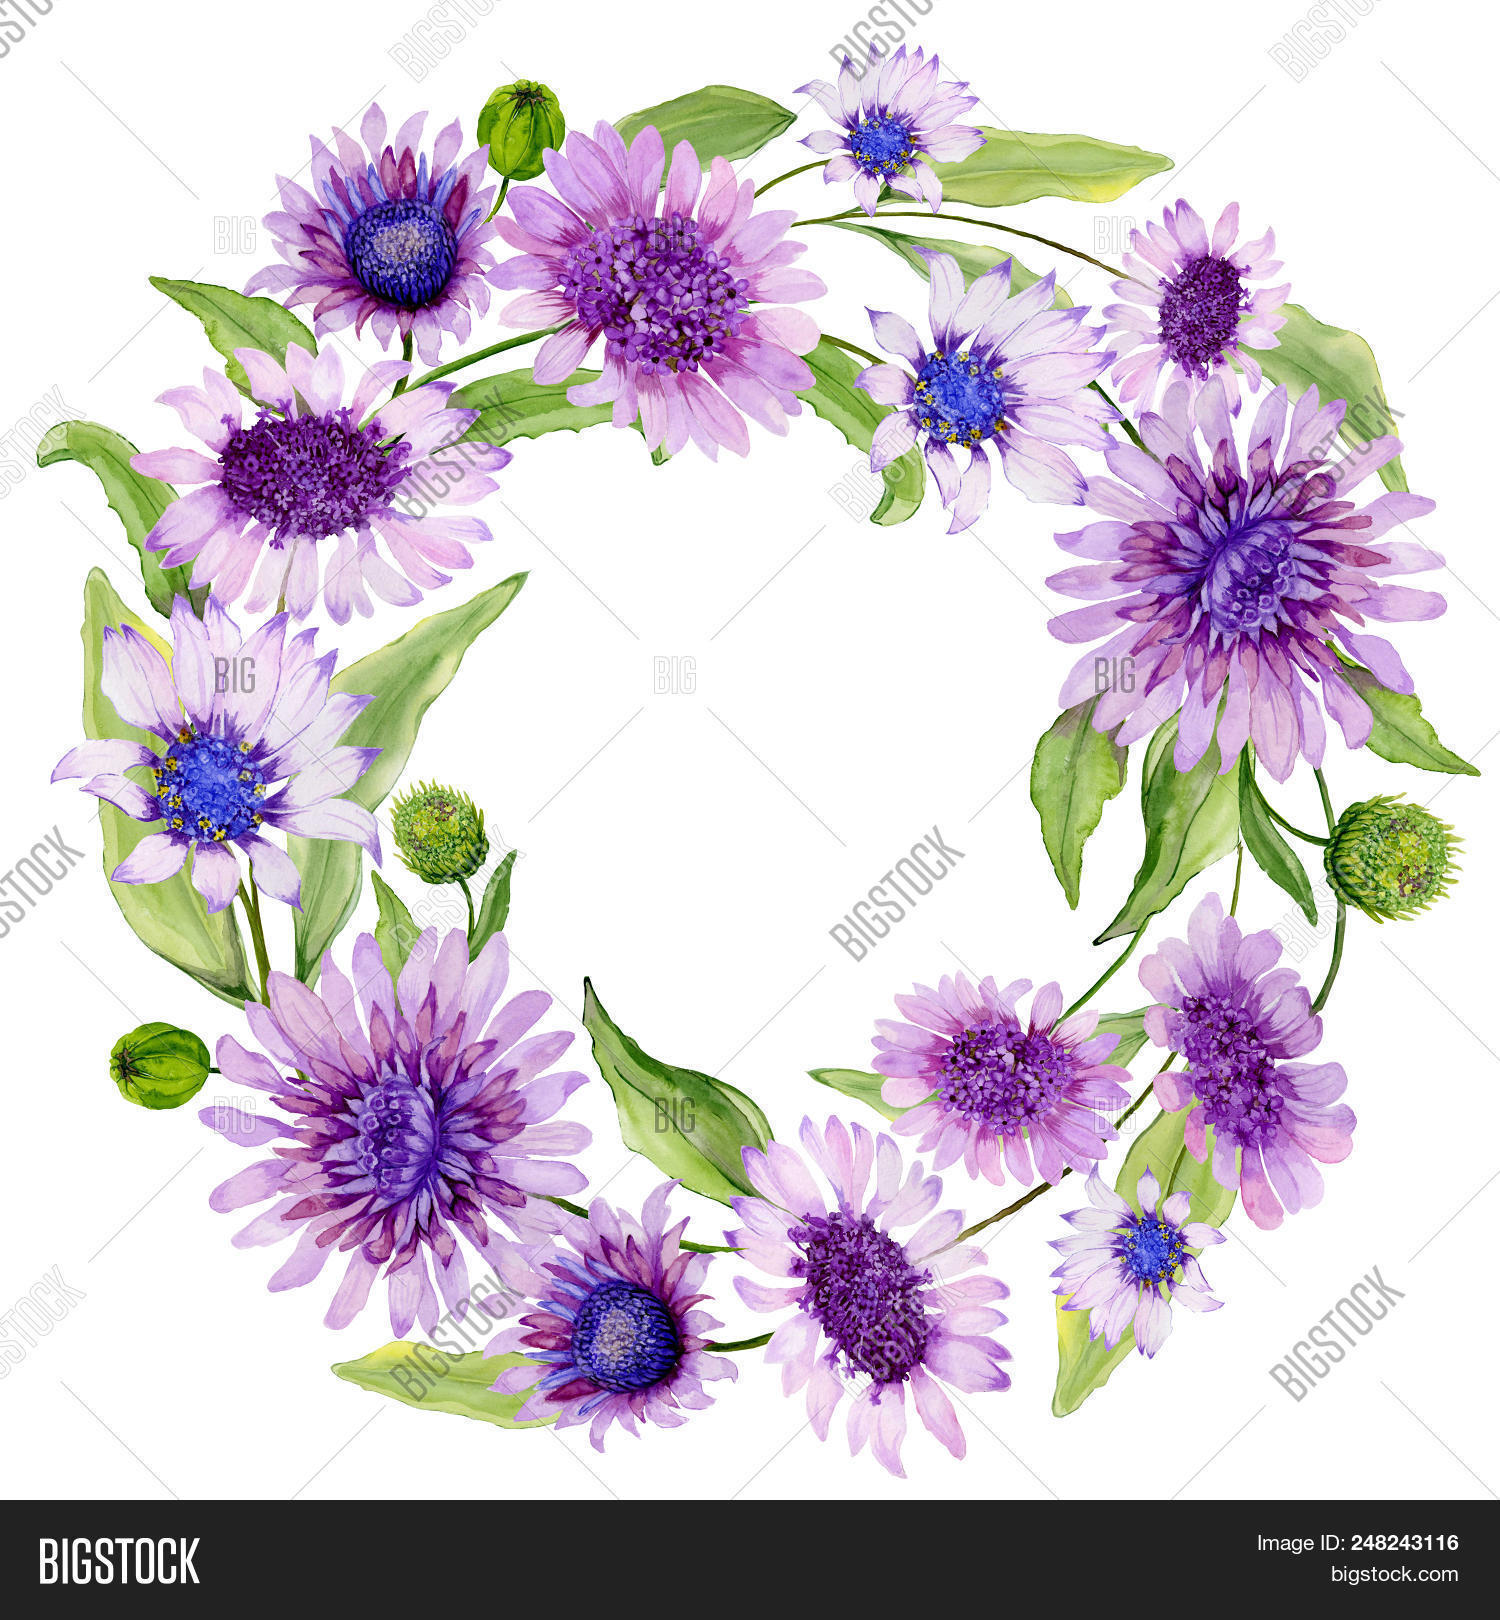 Round floral border image photo free trial bigstock round floral border beautiful blue and purple daisy flowers with green leaves on white background izmirmasajfo